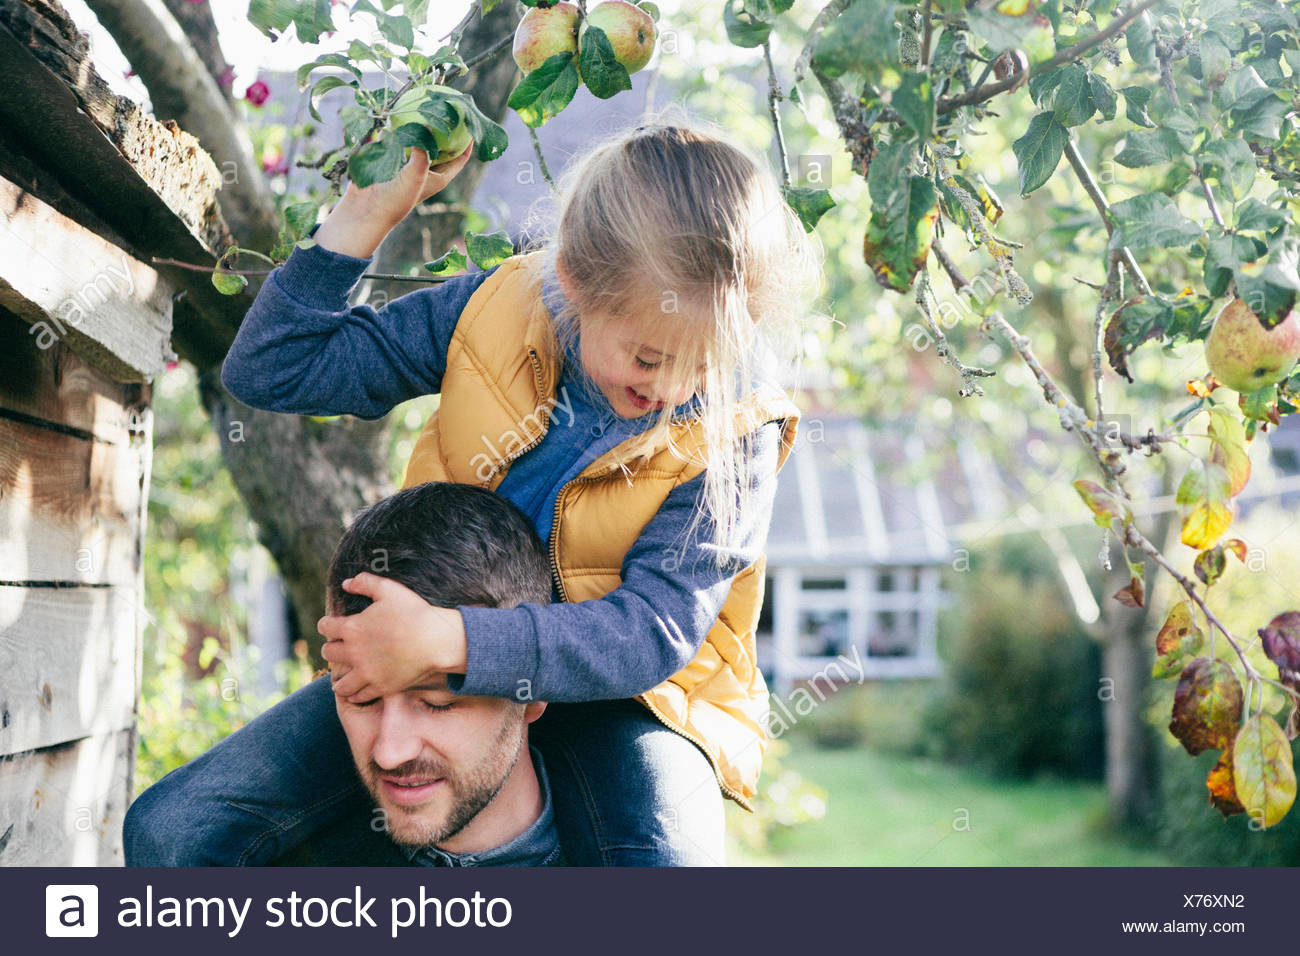 Daughter on father's shoulders, picking apple from tree - Stock Image